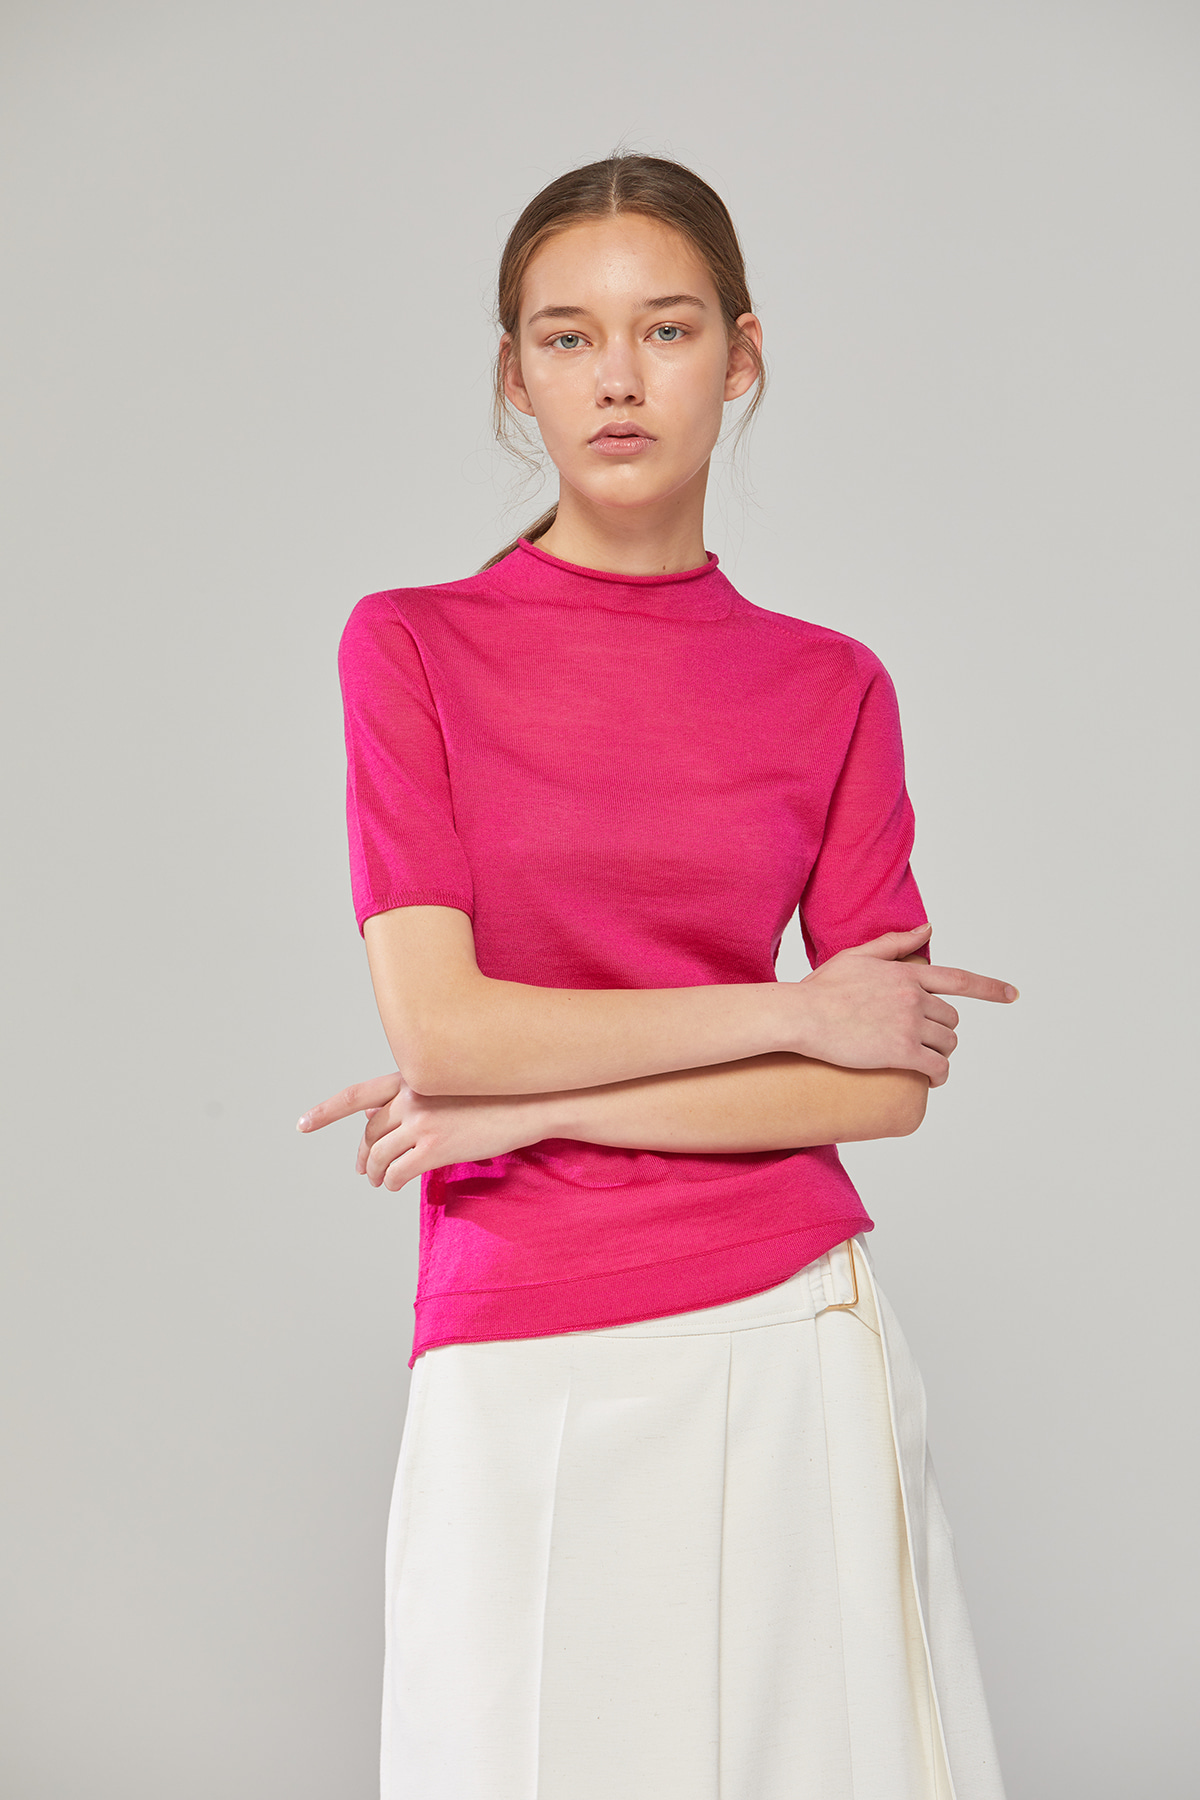 DEMERE 100% WOOL HALF-SLEEVED KNIT (PINK)